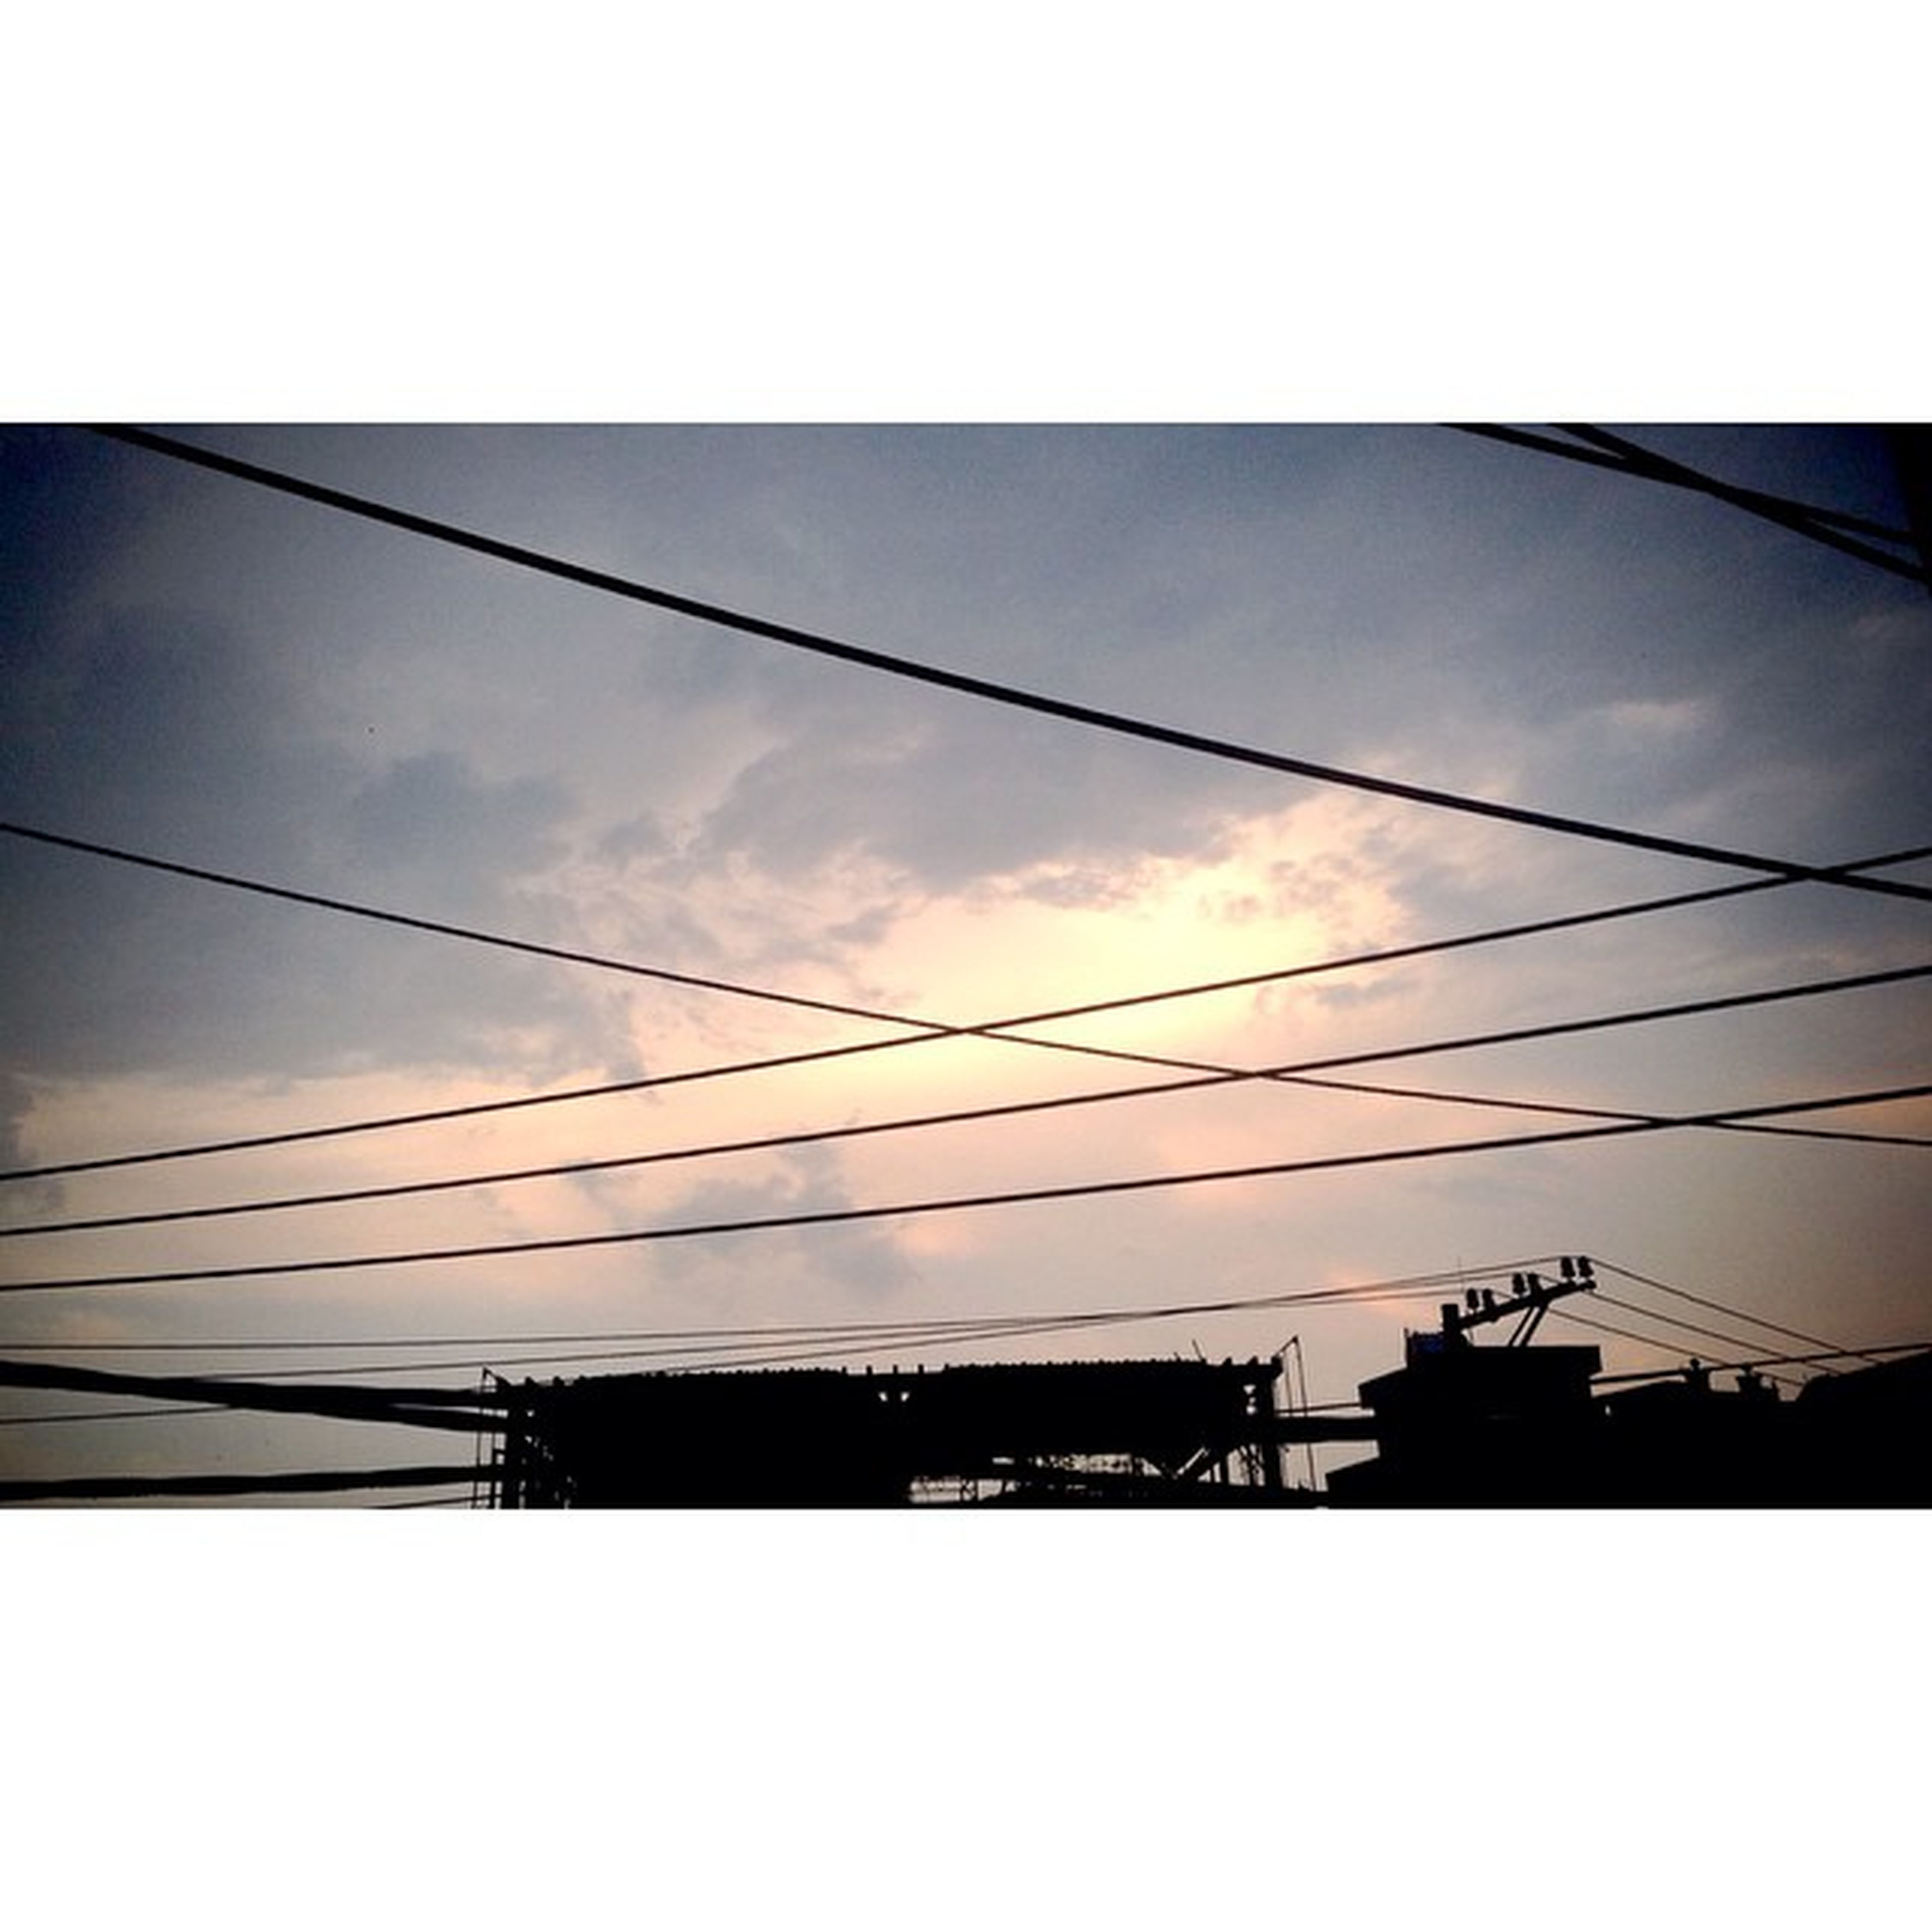 power line, architecture, built structure, low angle view, cable, electricity pylon, building exterior, sky, connection, silhouette, power supply, electricity, power cable, cloud - sky, city, transfer print, auto post production filter, cloud, sunset, dusk